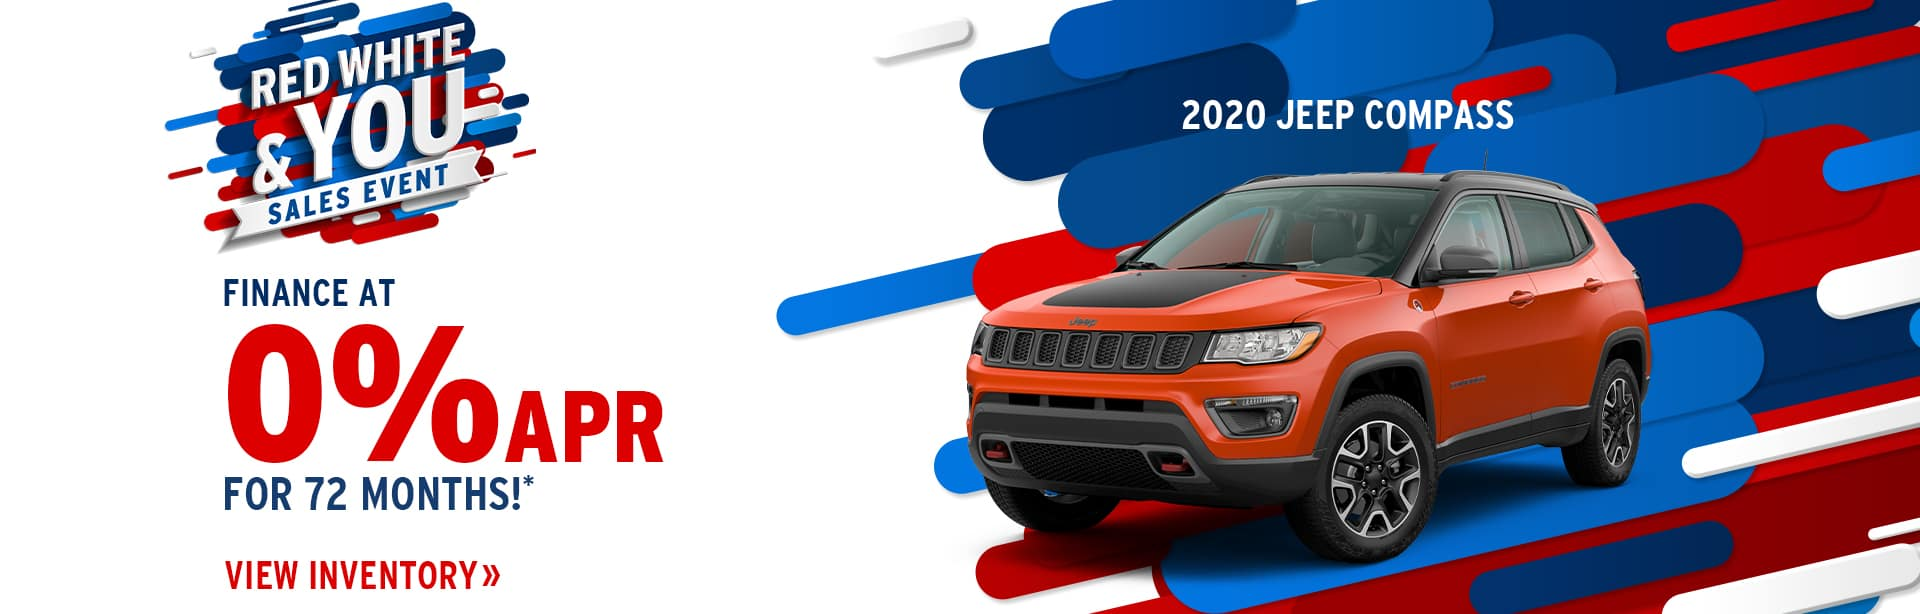 Best Finance deal on a New Jeep Compass near Greencastle, Indiana